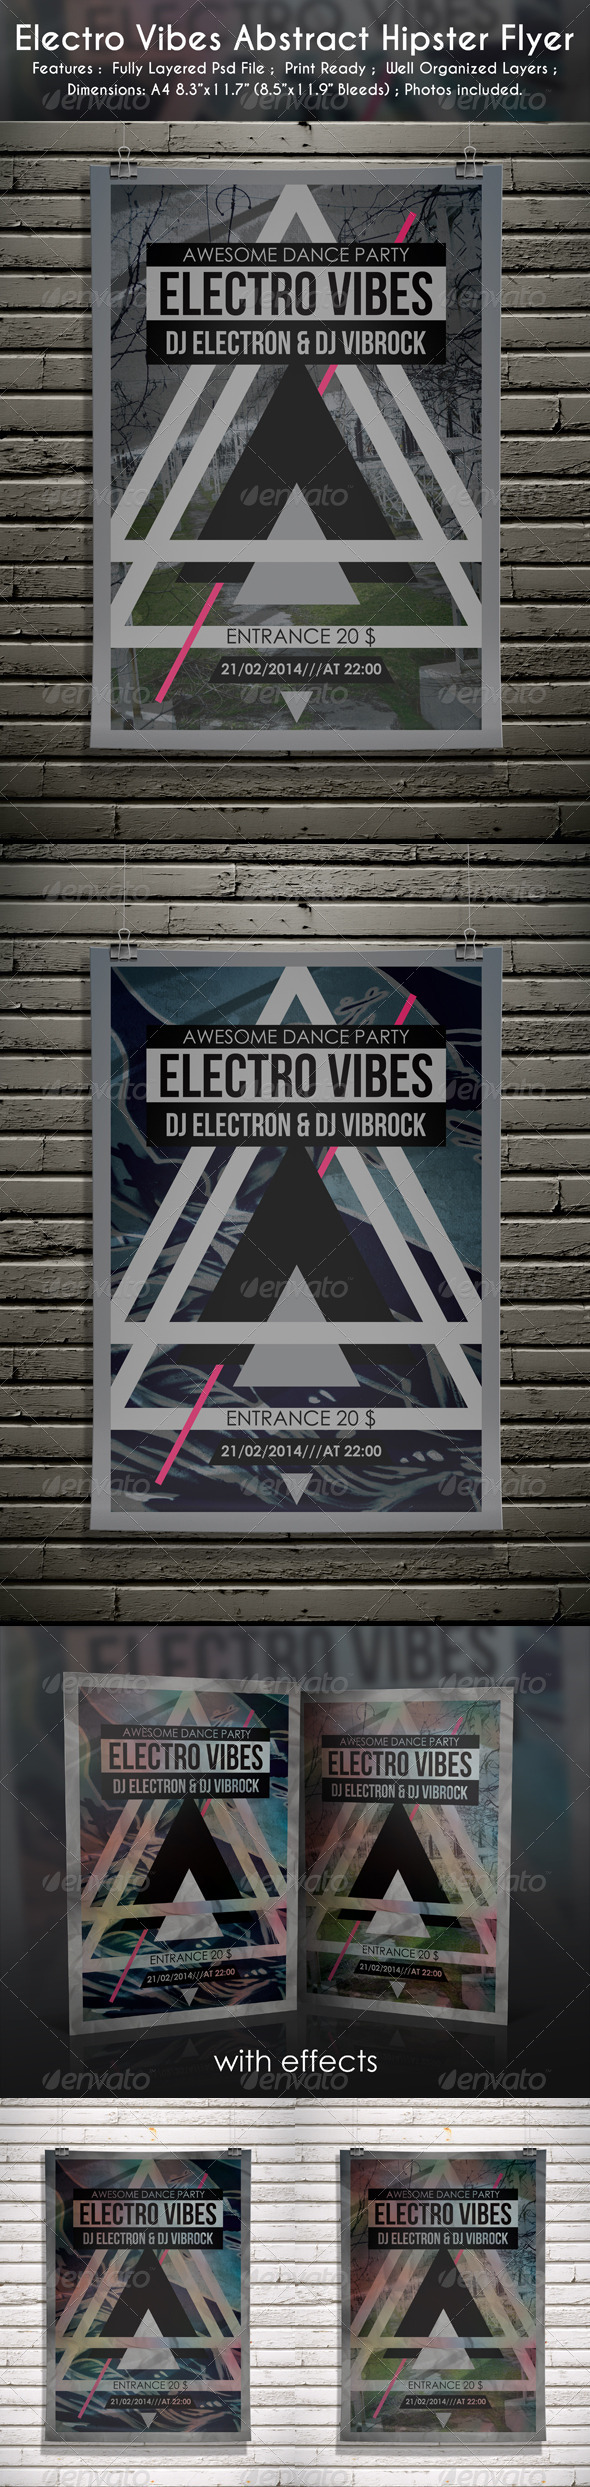 Electro Vibes Abstract Hipster Flyer  - Clubs & Parties Events